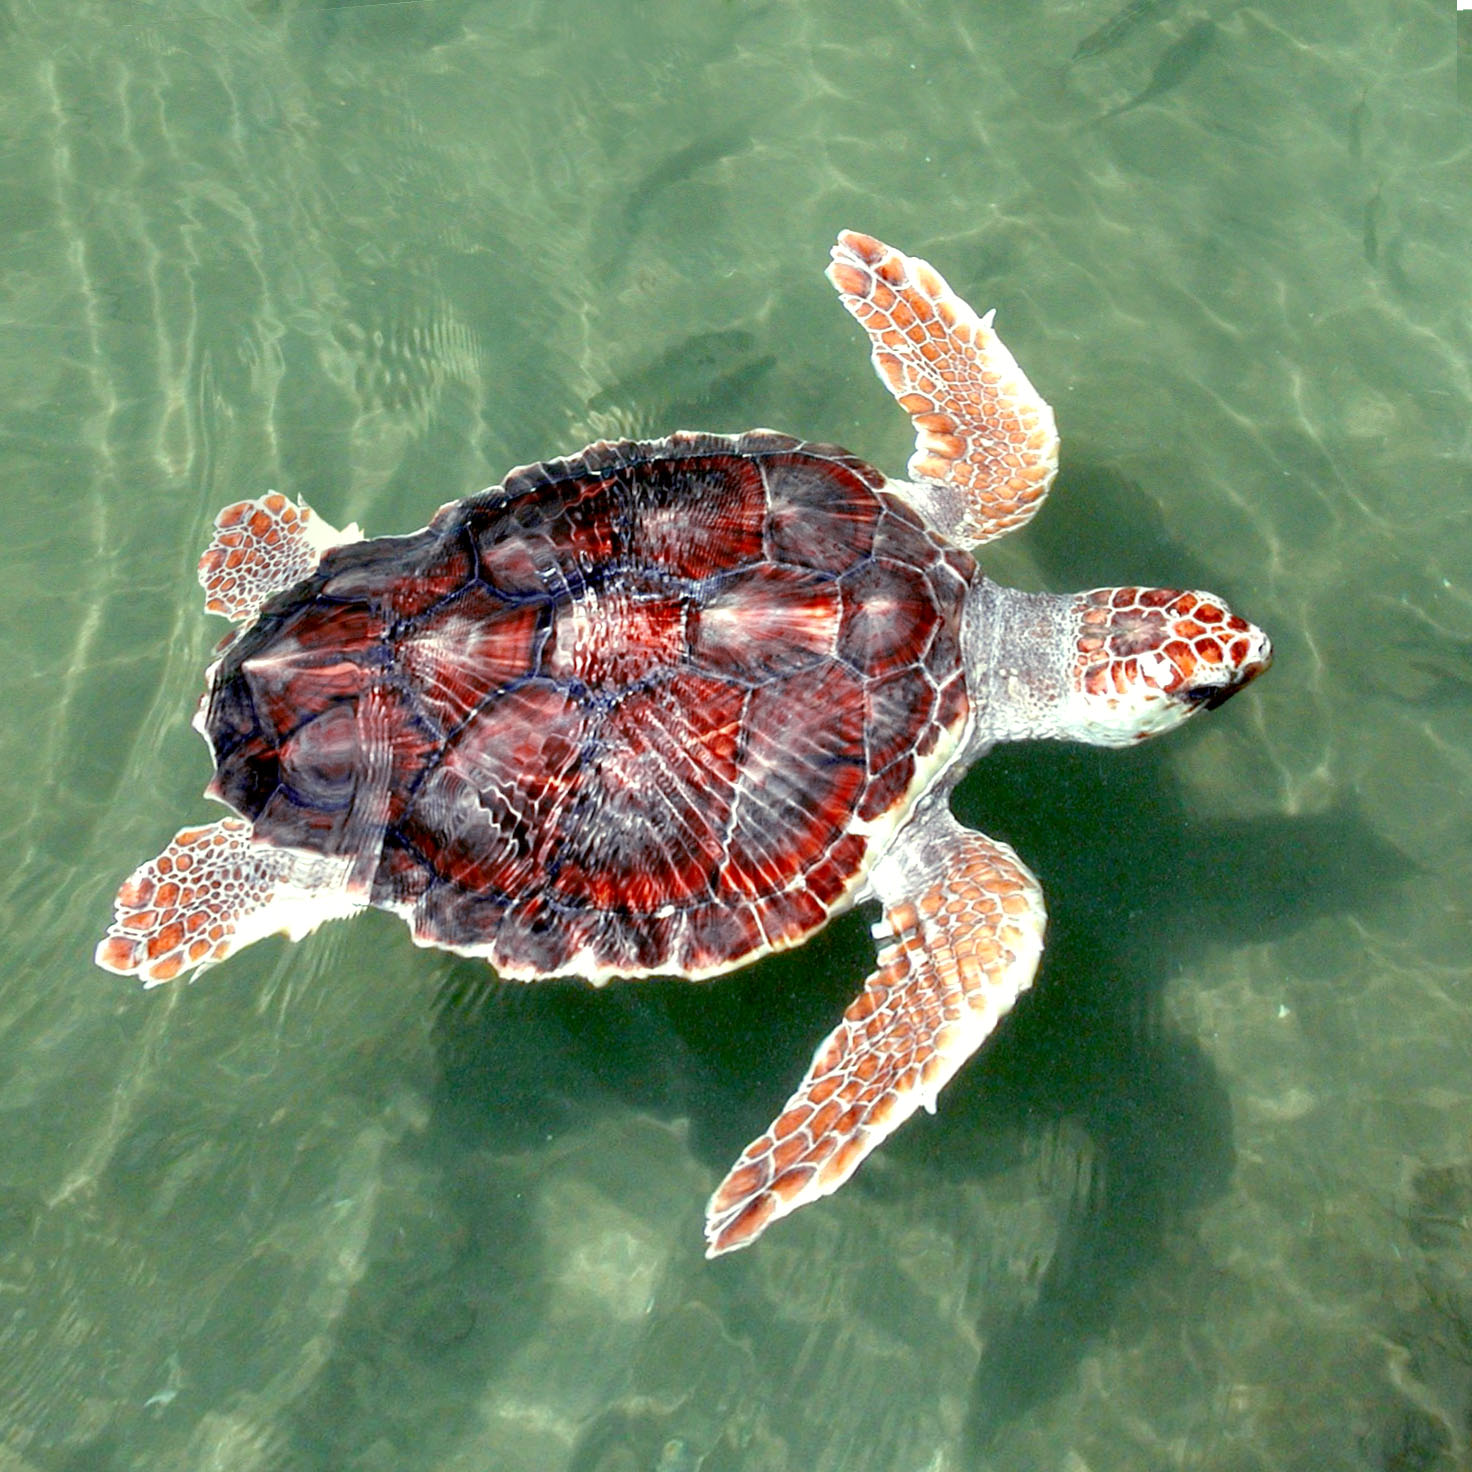 Fisheries Service Proposes Overdue Measures to Stop Sea Turtle Deaths